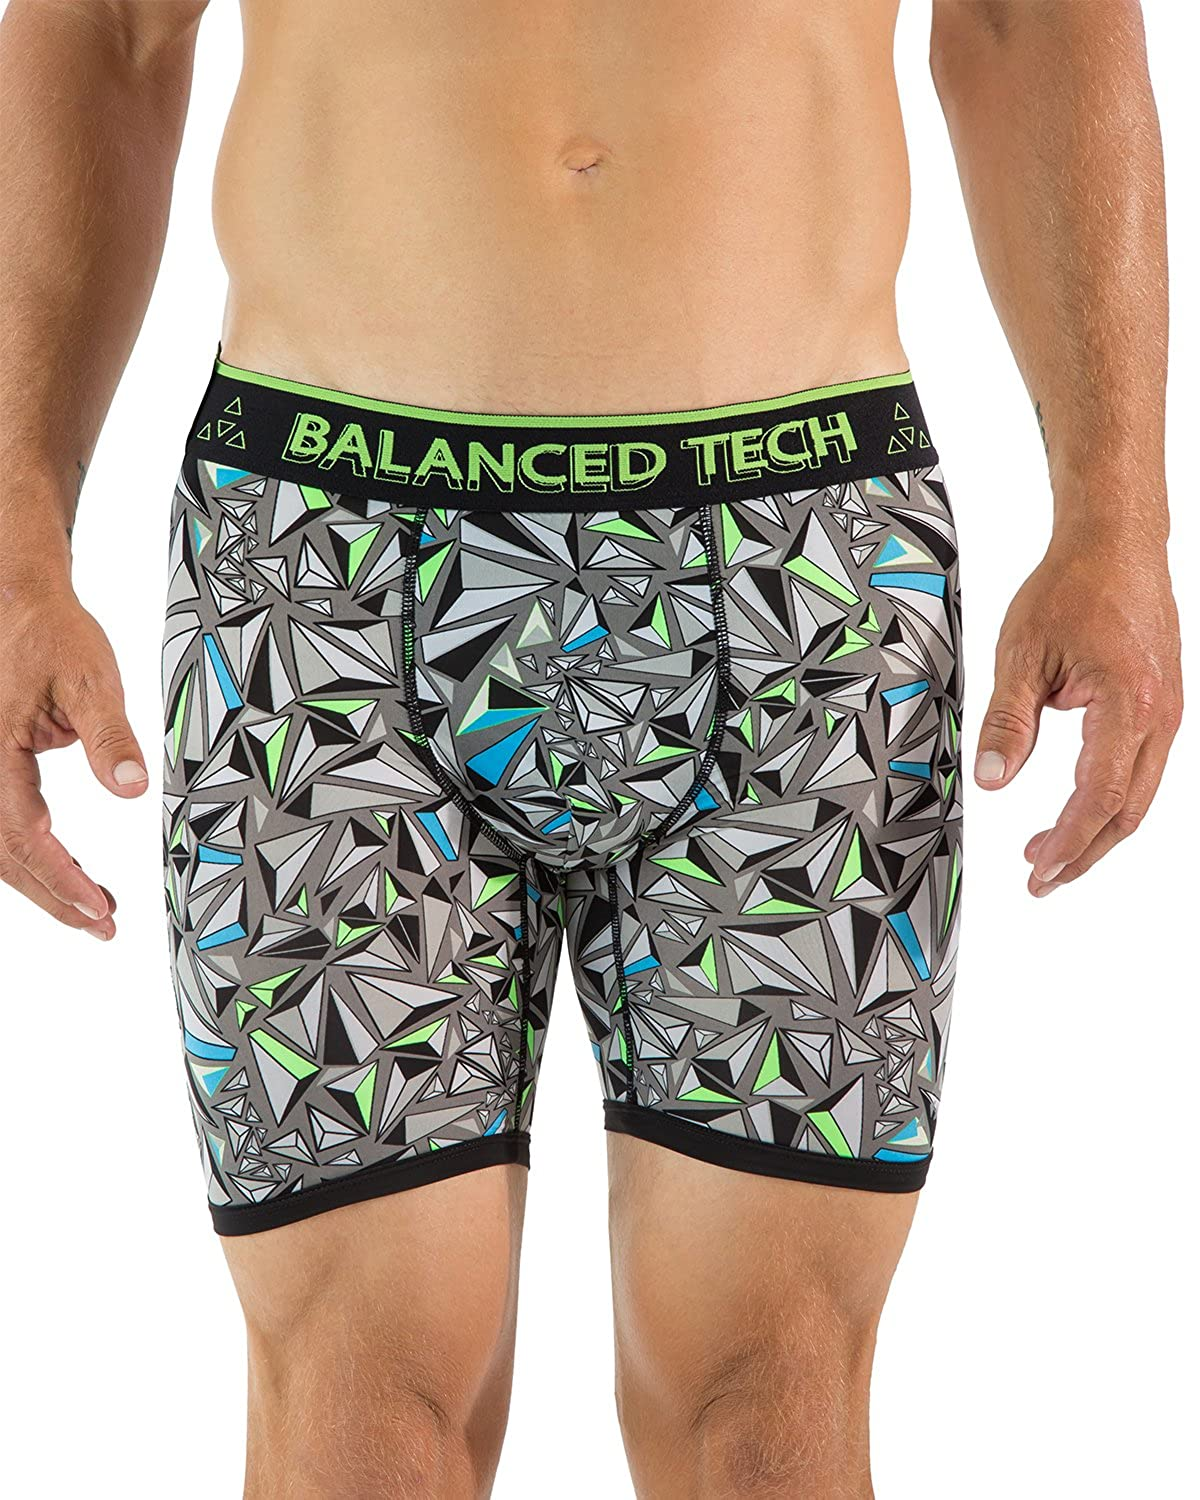 Balanced Tech Men's Active Sport Performance Boxer Briefs